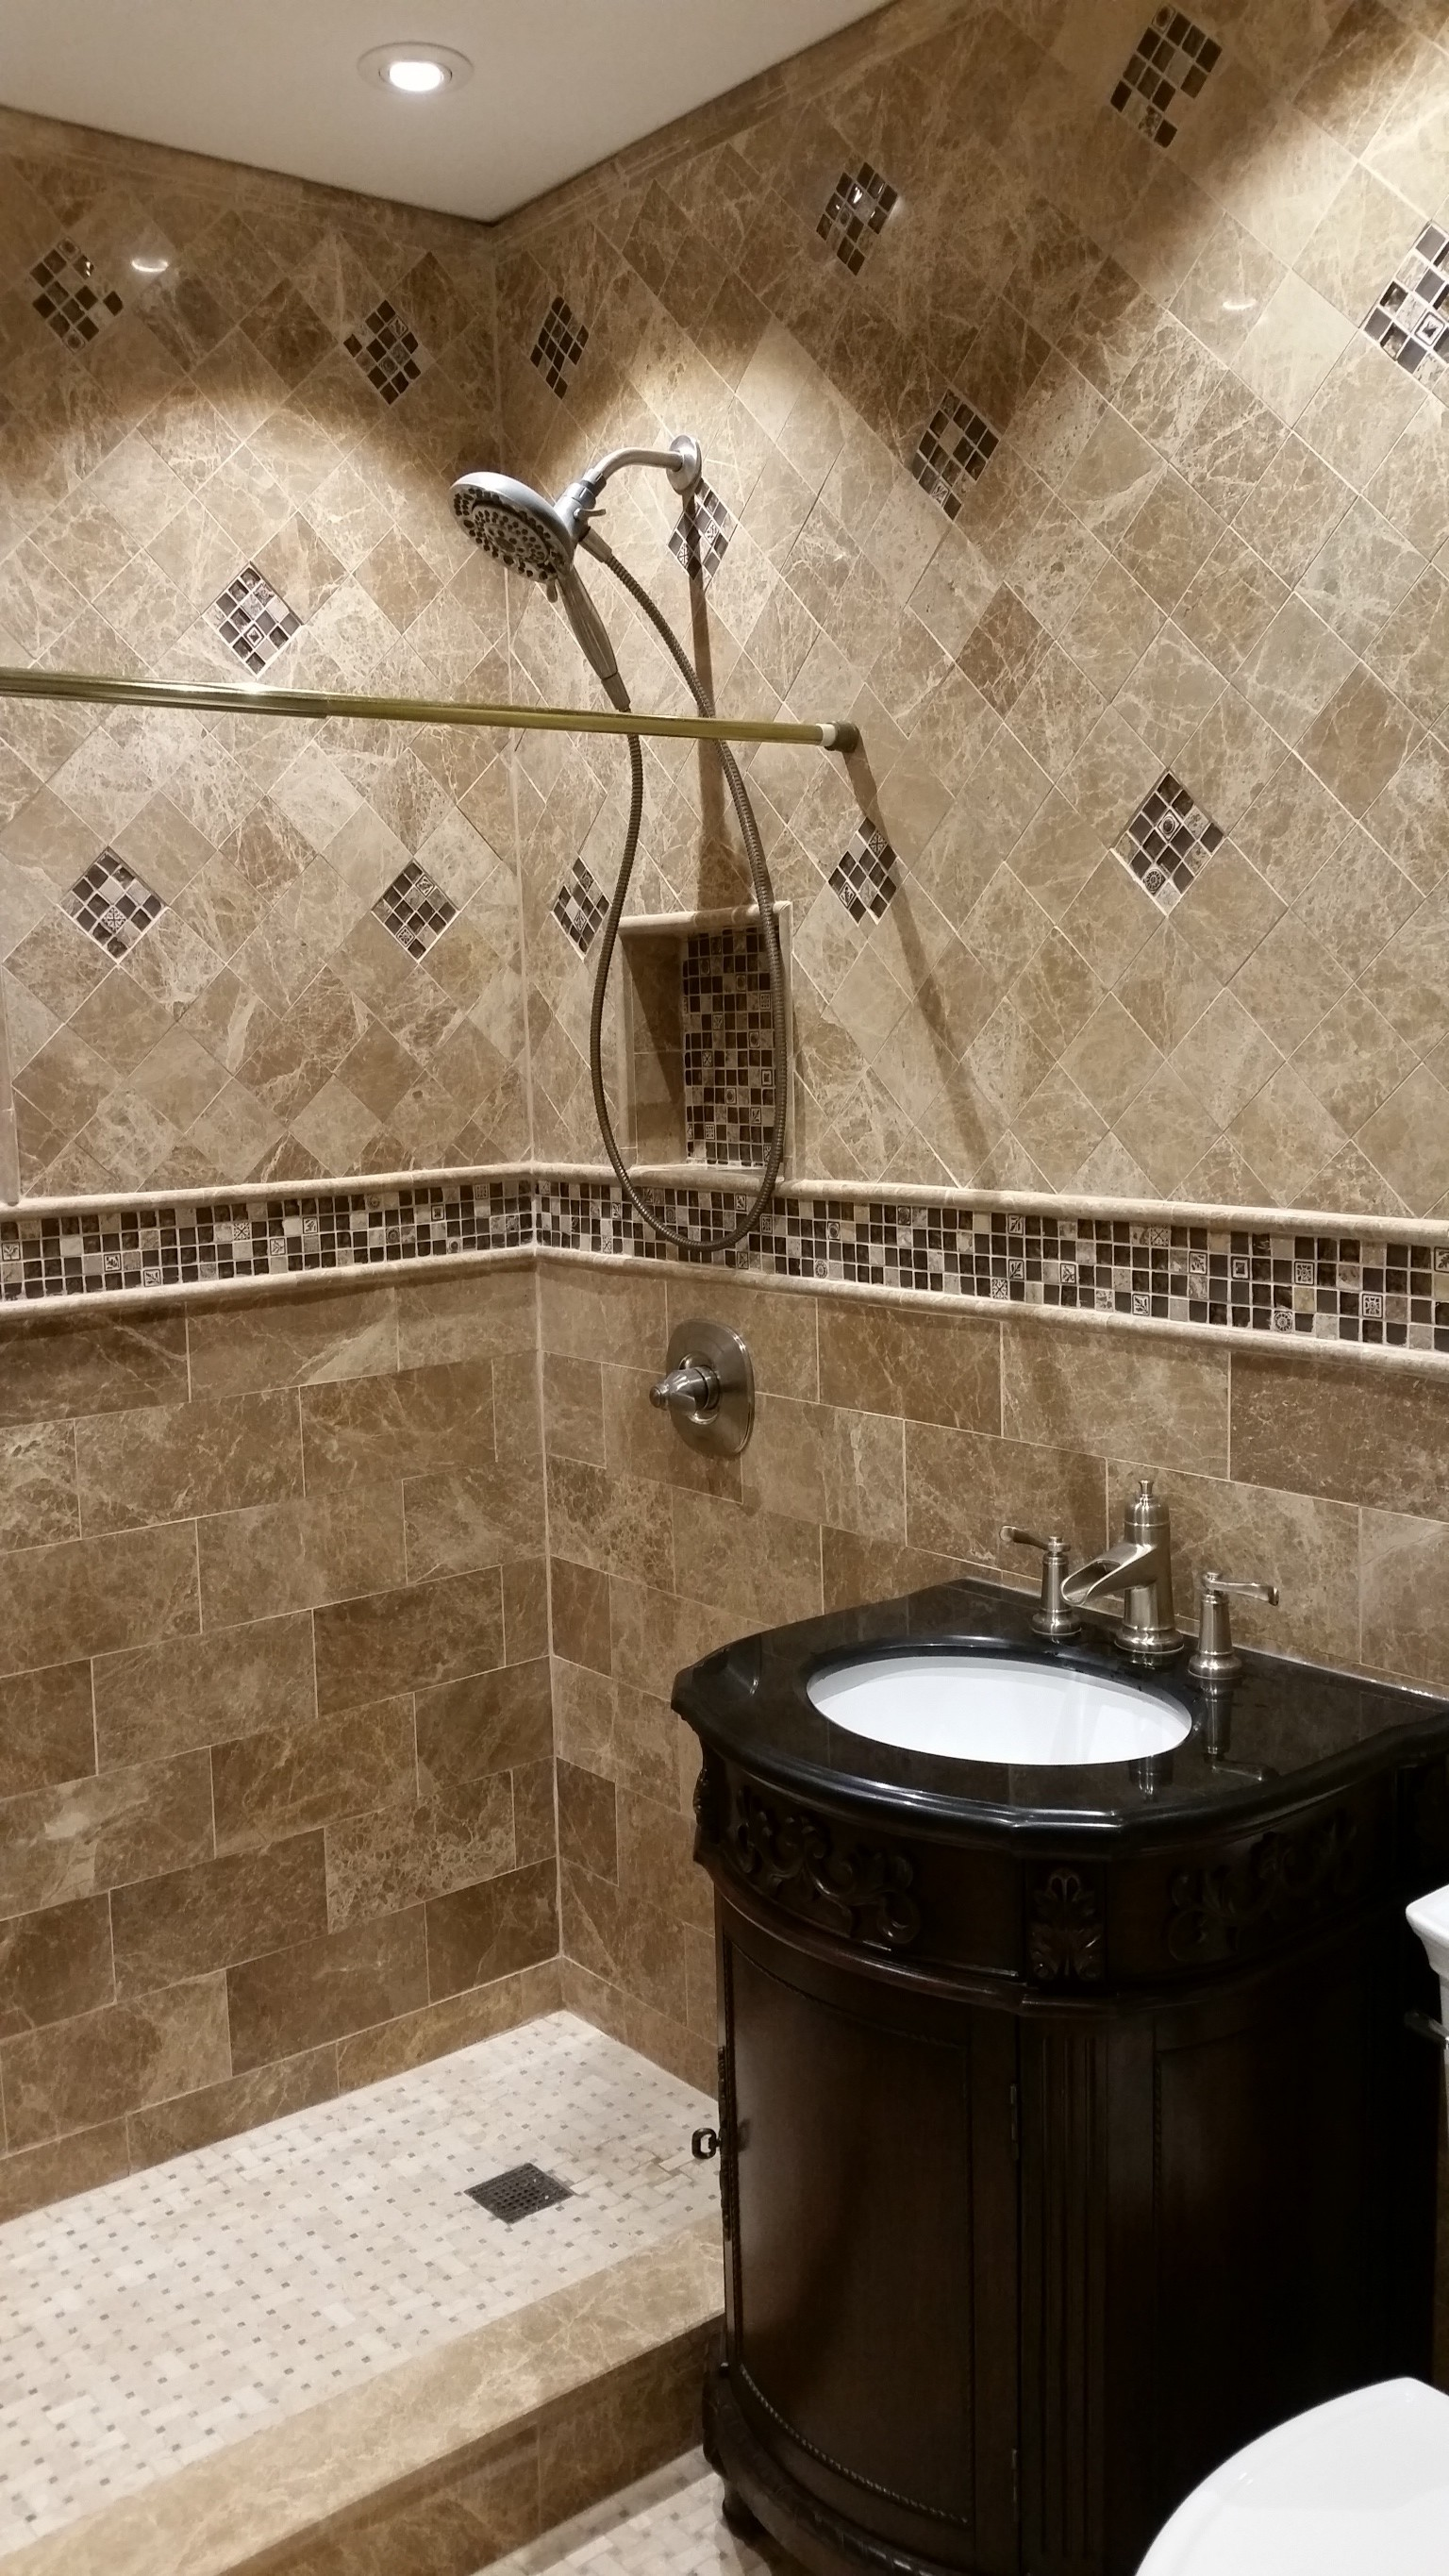 Brilliant Marvelous Manhattan Bathroom Remodeling  Home Art Tile In QueensNY